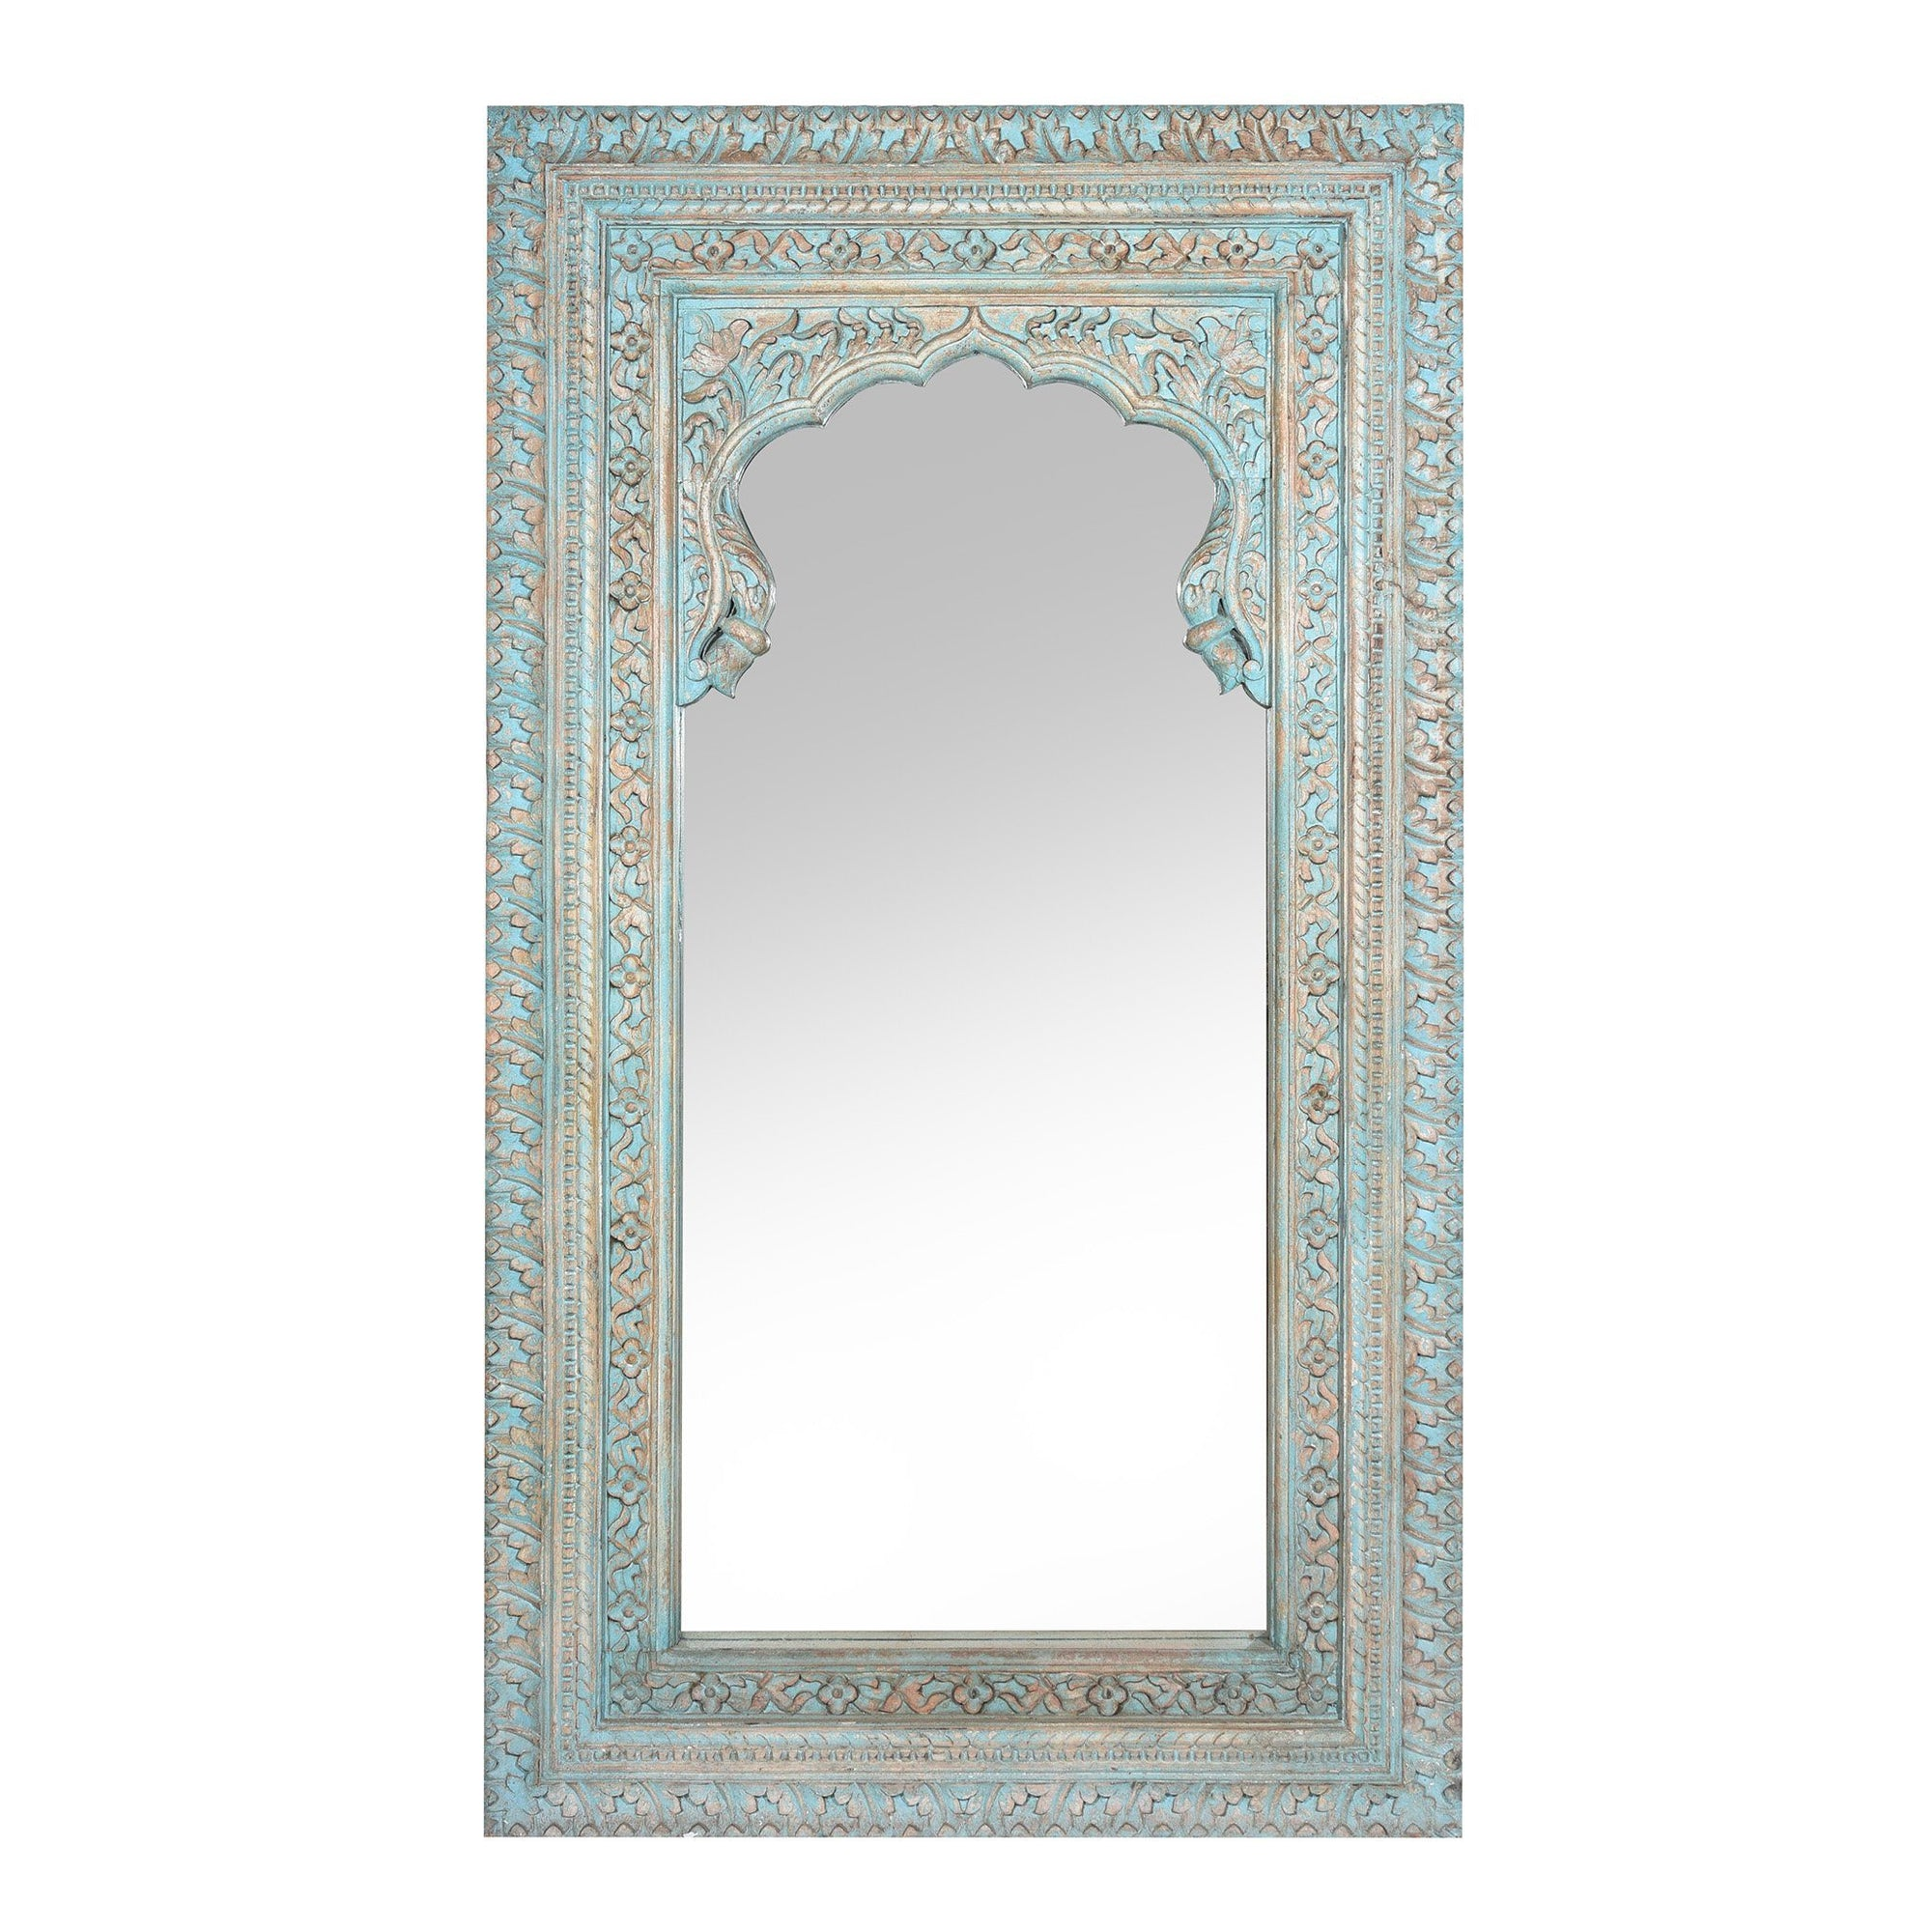 Carved Wood Mihrab Mirror Frame -  Blue Limed Finish | Indigo Oriental Antiques